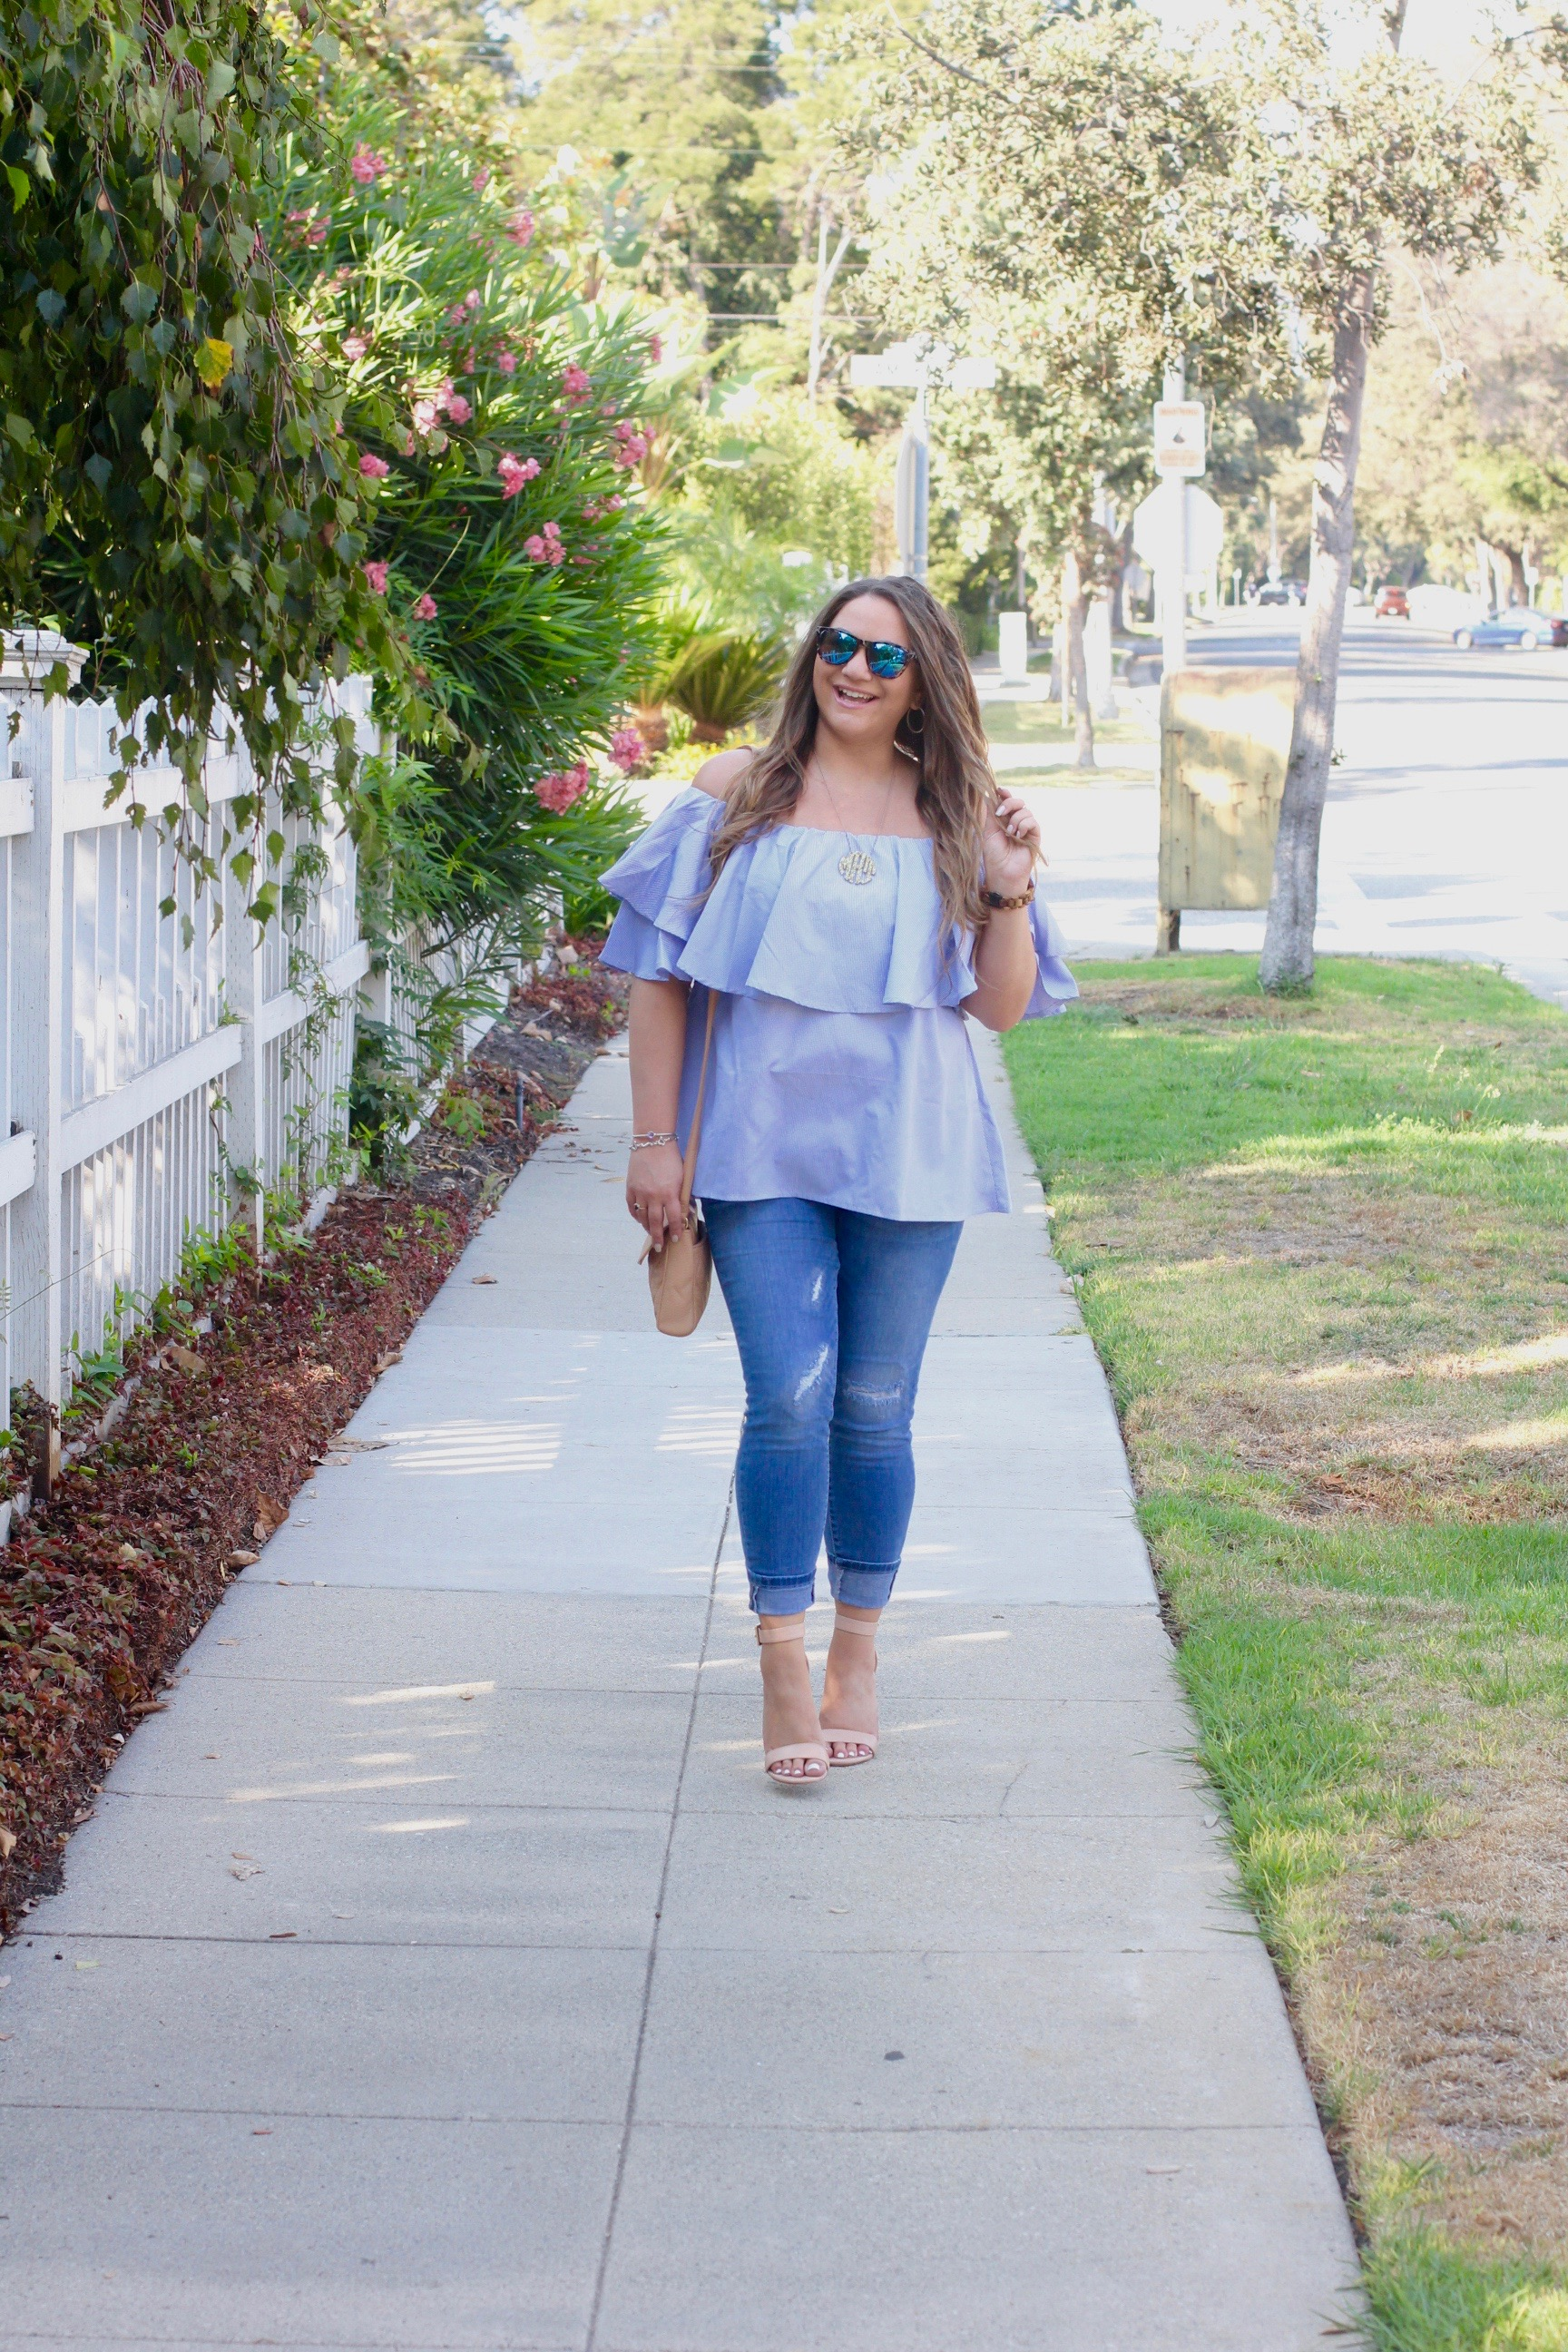 missyonmadison, melissa tierney, la blogger, ripped skinny jeans, off the shoulder top, cold shoulder top, make me chic, blue off the shoulder top, summer style, nude ankle strap sandals, nude ankle strap heels, nude block sandals, vera bradley, vera bradley crossbody bag, gold acrylic monogram necklace, nectar sunglasses,